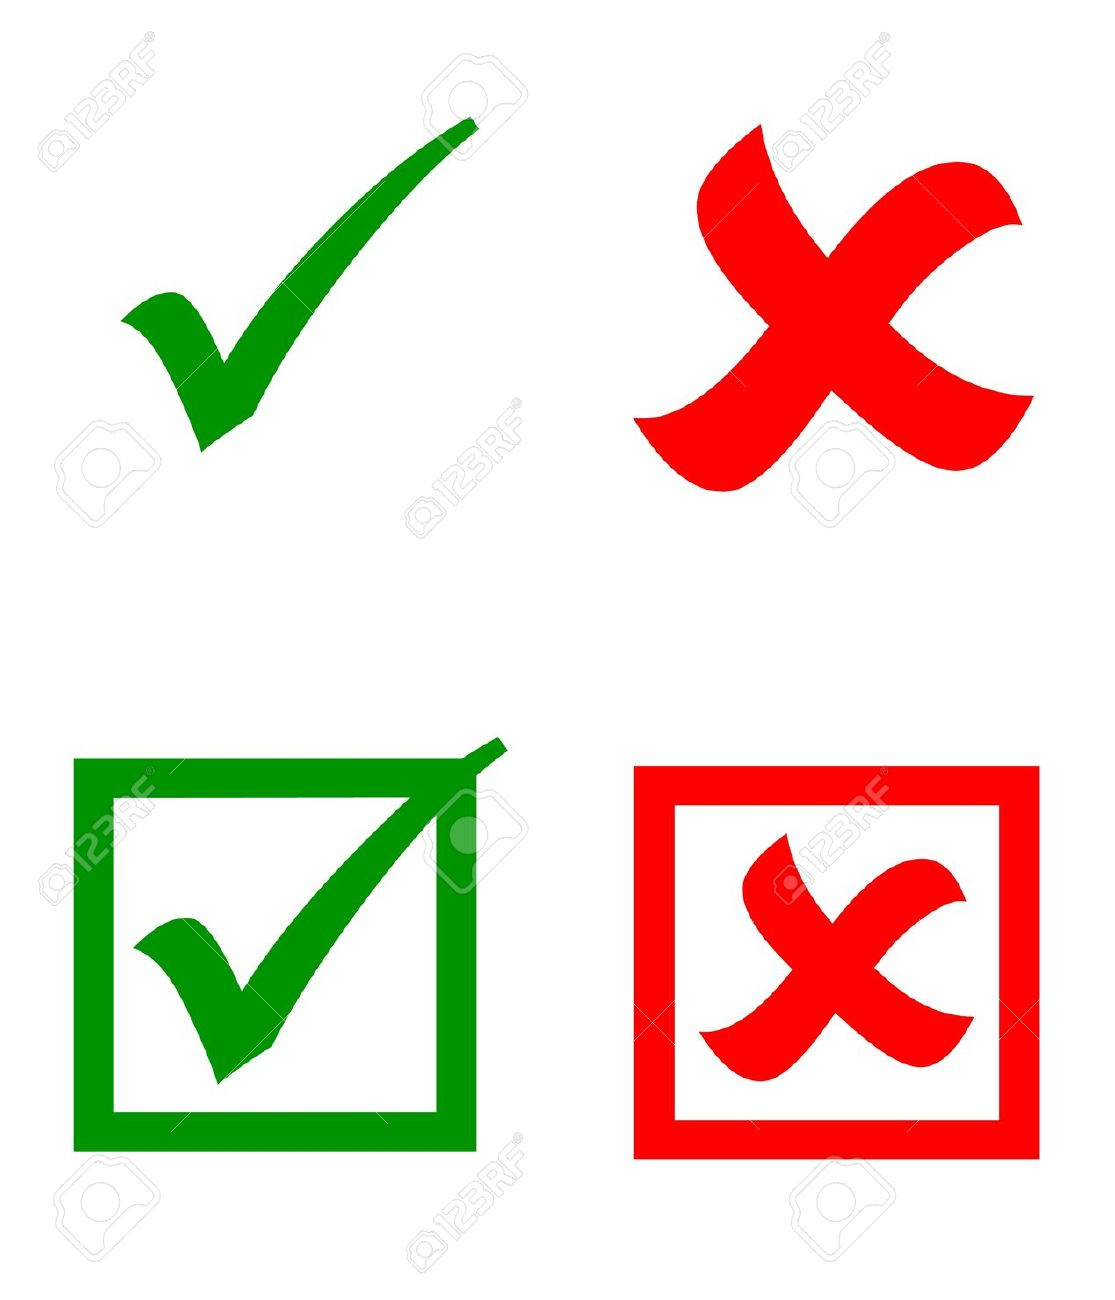 Checkmark symbol in word images symbol and sign ideas check mark symbol word images symbol and sign ideas excel check mark symbol choice image symbol buycottarizona